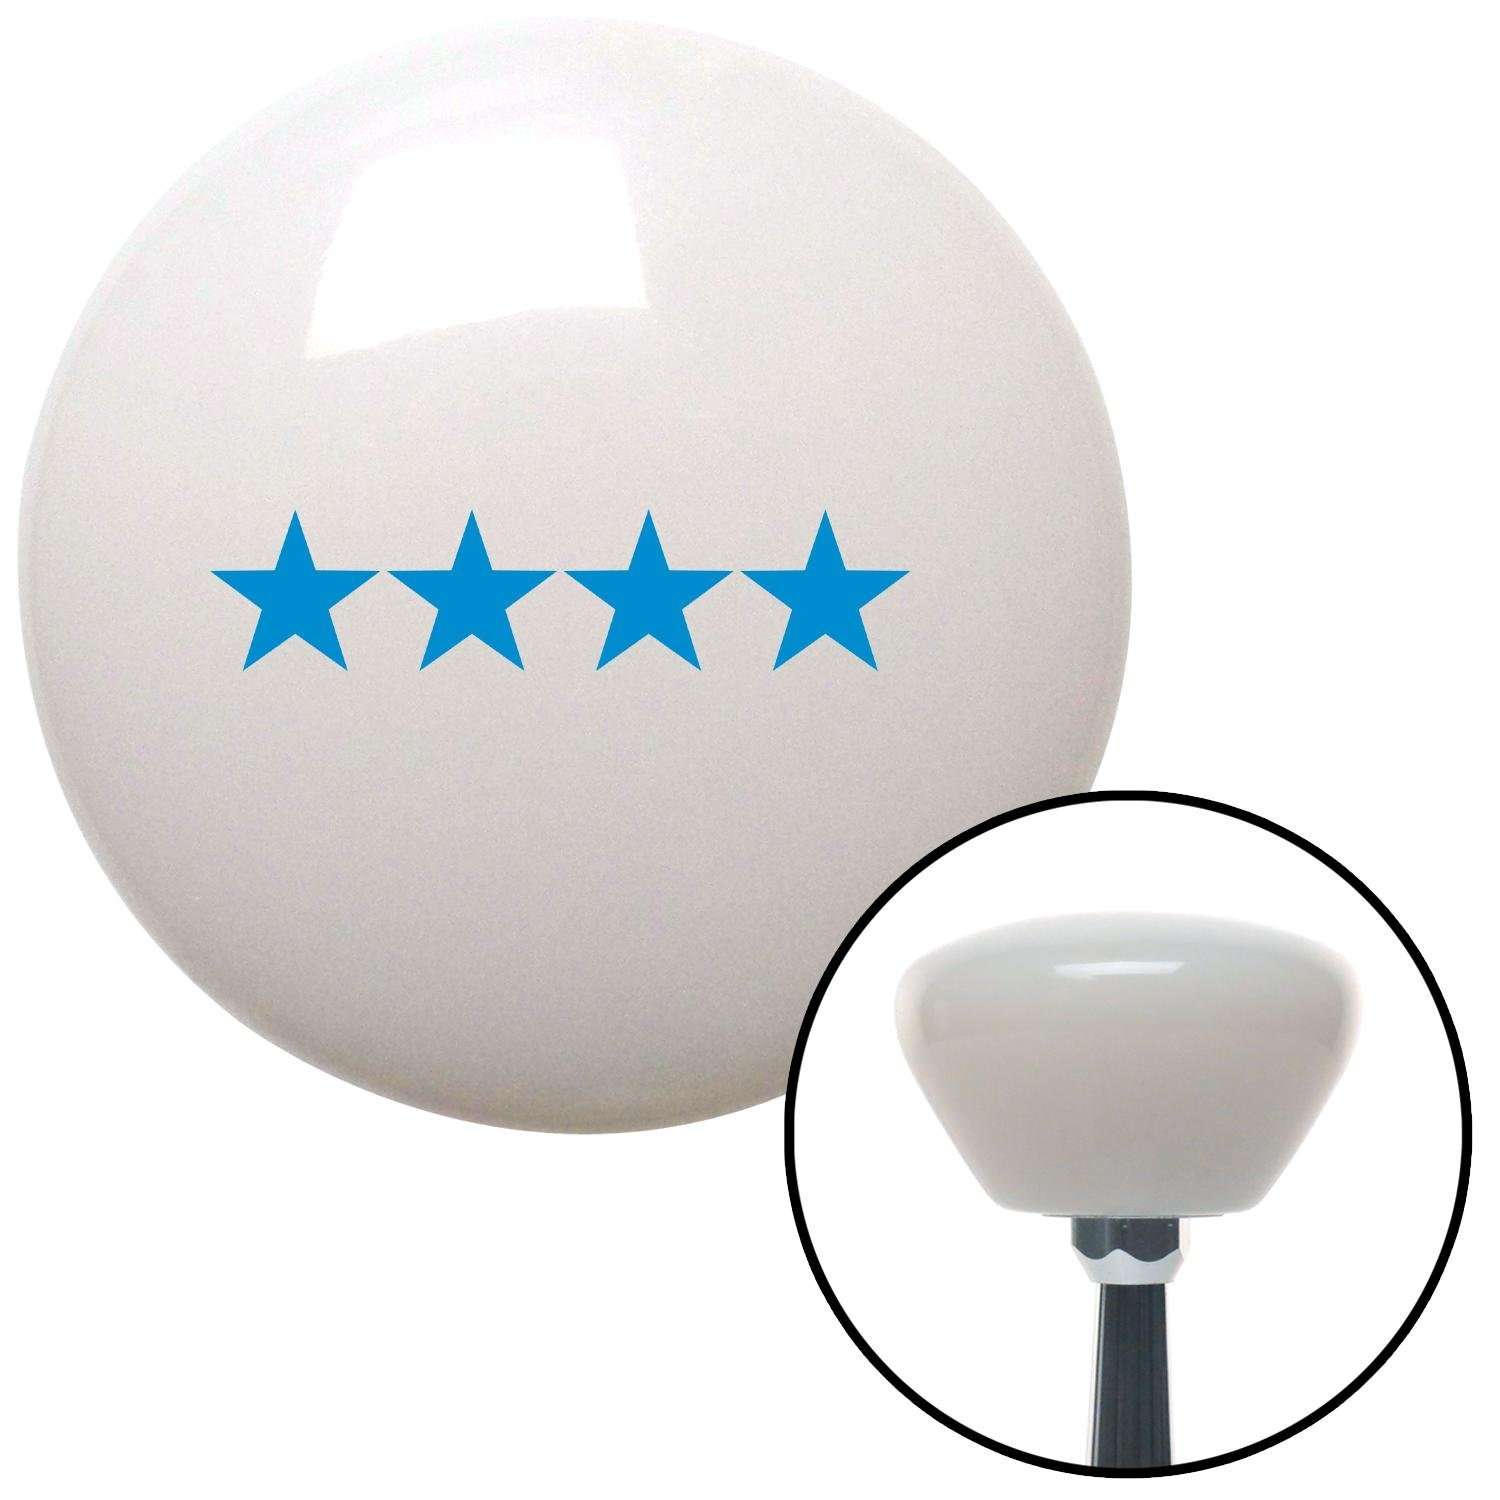 Blue Officer 10 - General American Shifter 154424 White Retro Shift Knob with M16 x 1.5 Insert